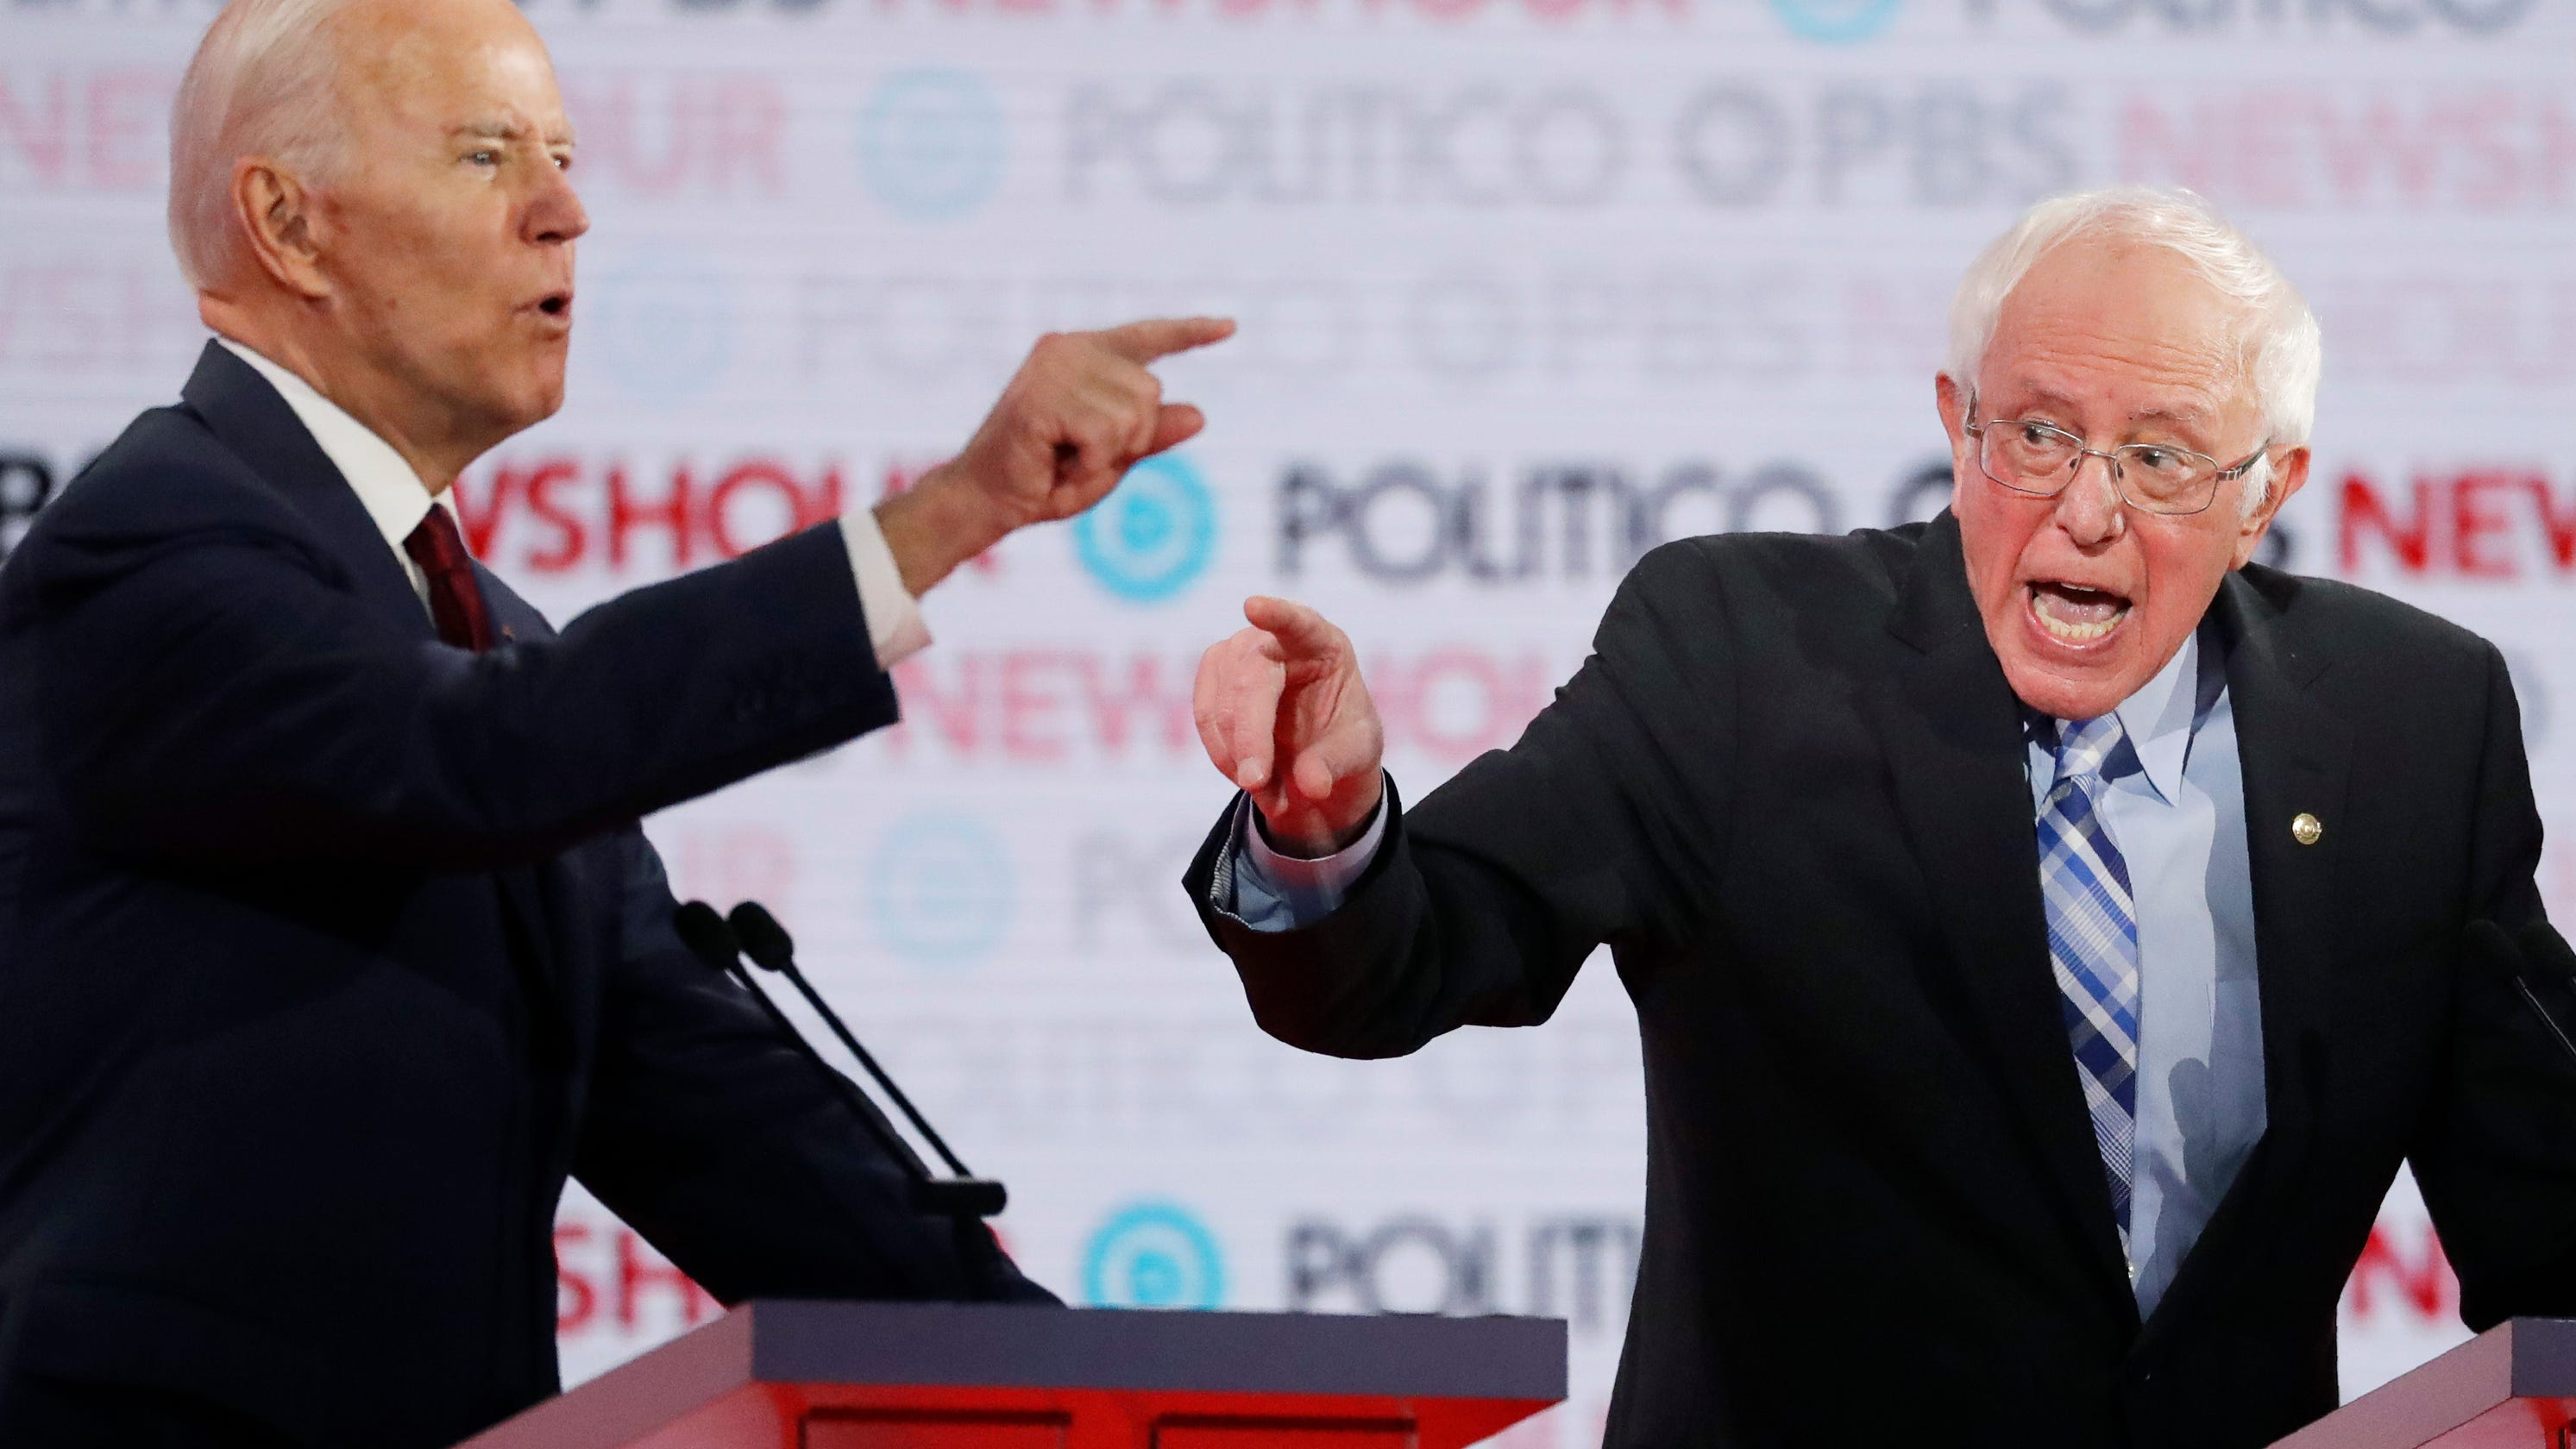 Bernie and Biden duke it out on health care